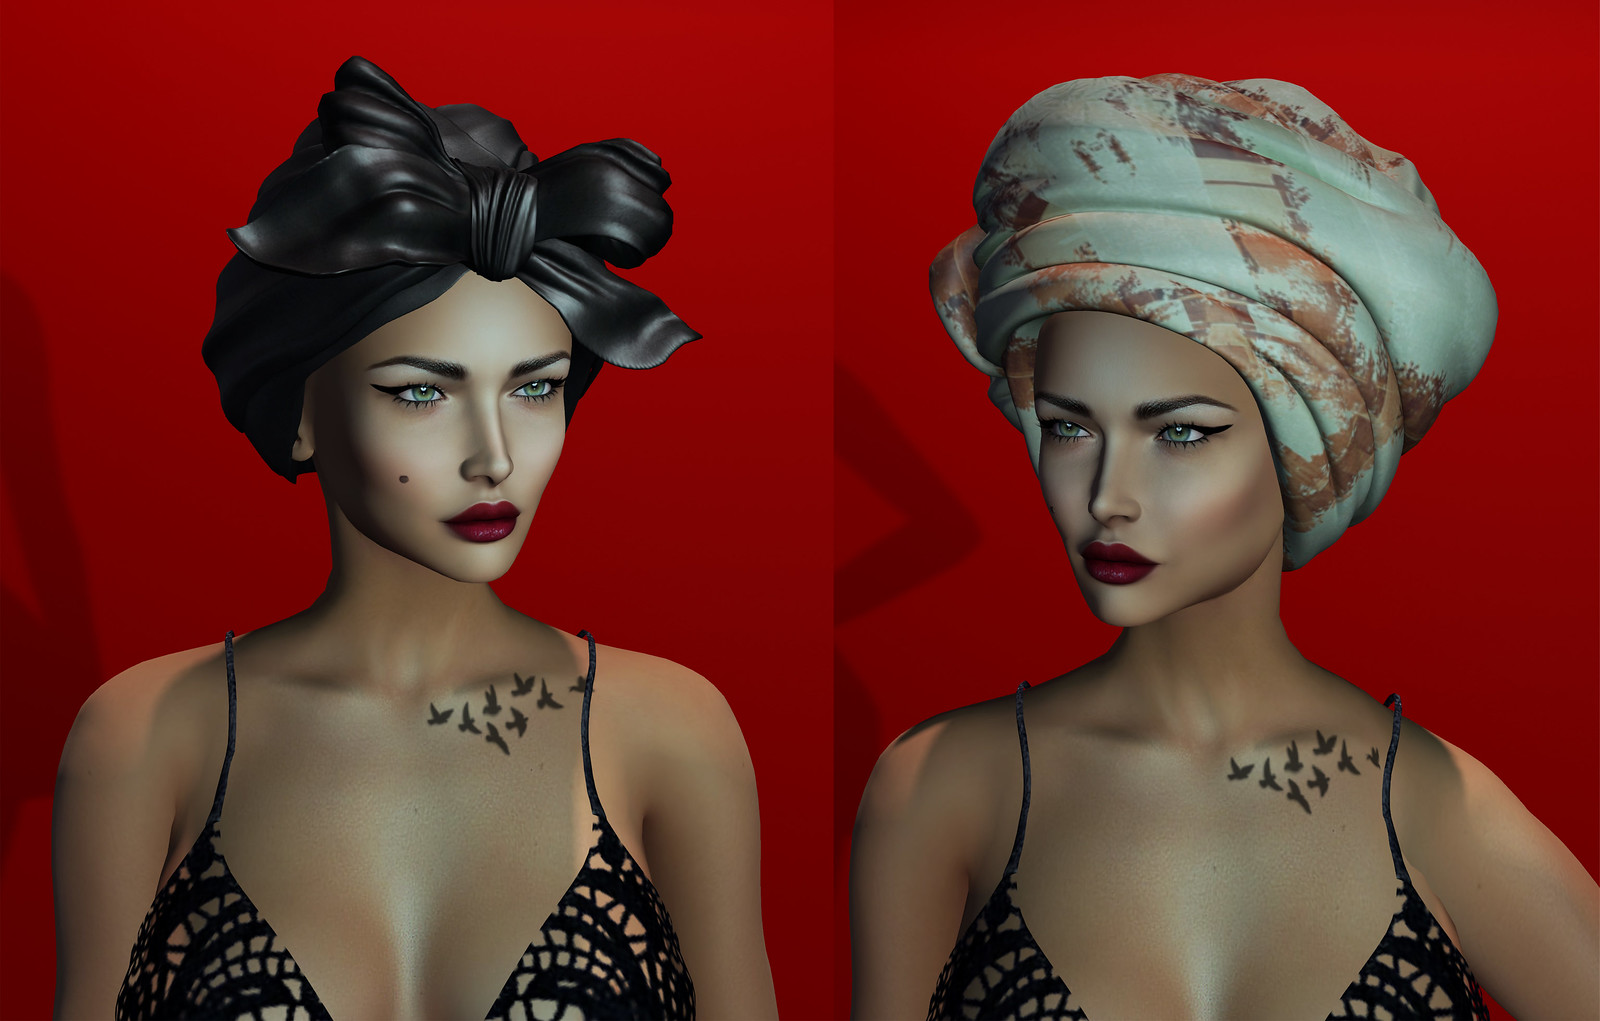 Hair Fair 17 - Baiastice & Lelutka